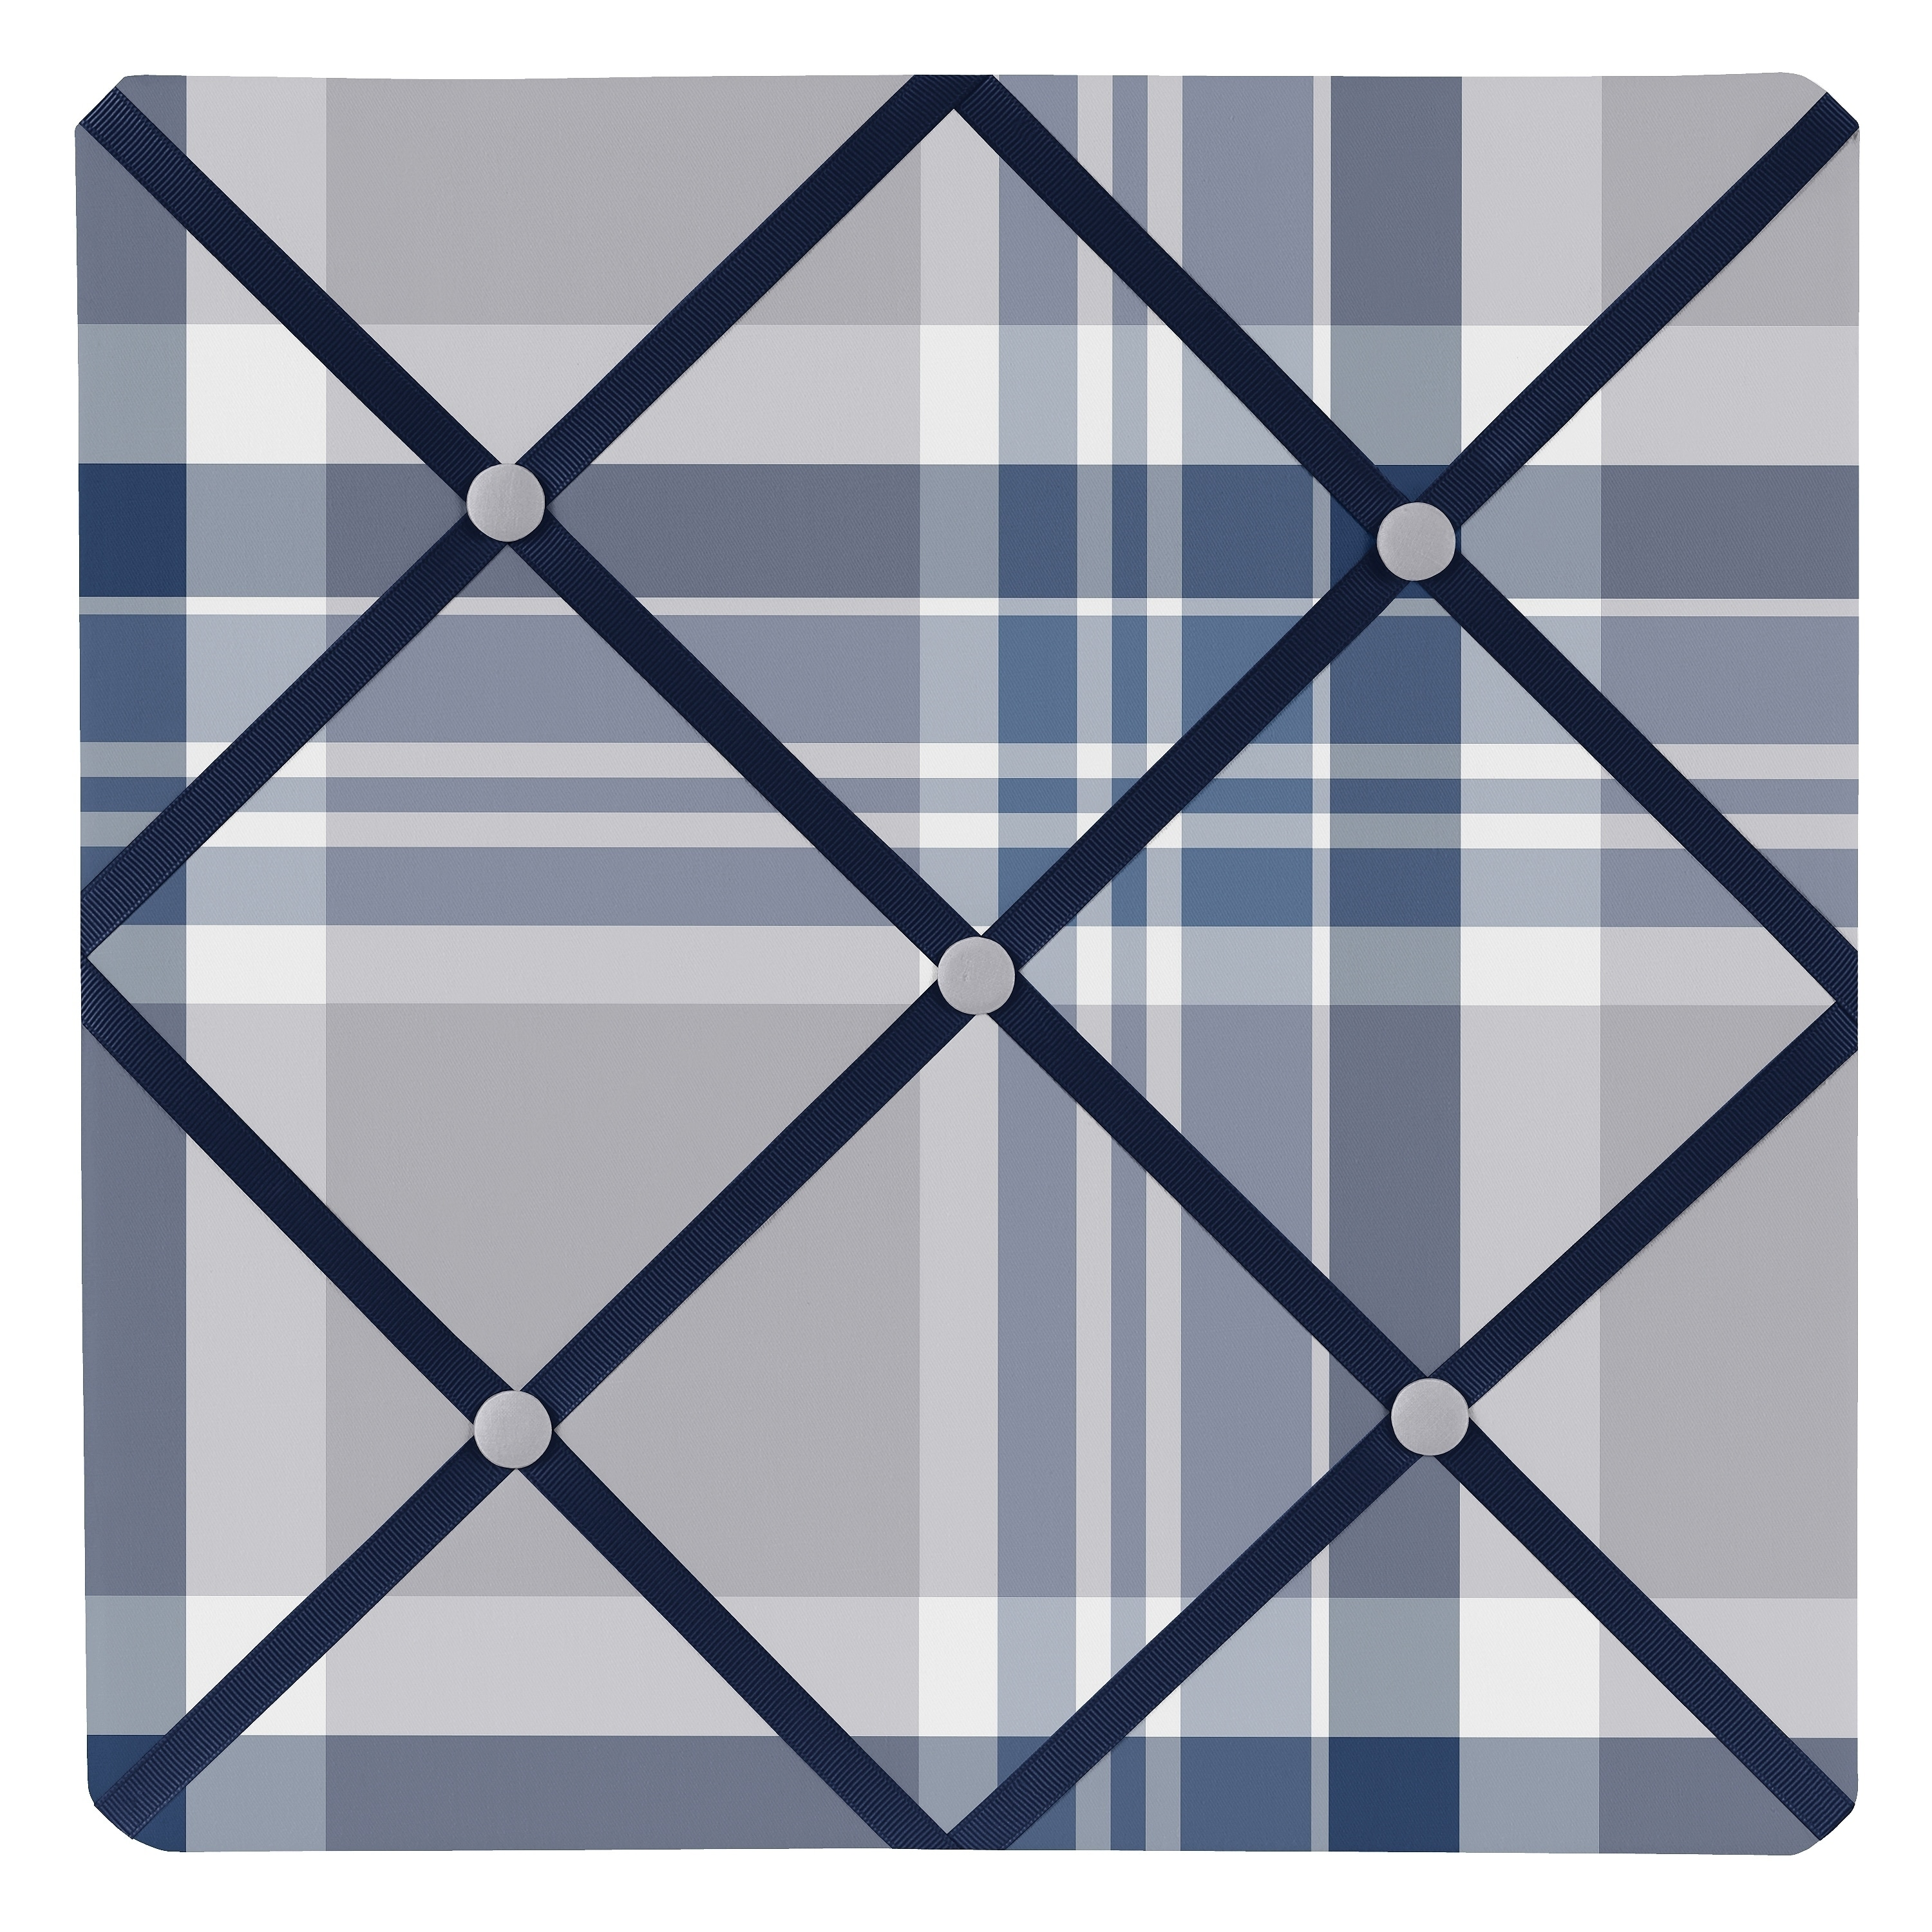 JoJo Designs Memo Board for the Navy Blue and Gray Plaid ...